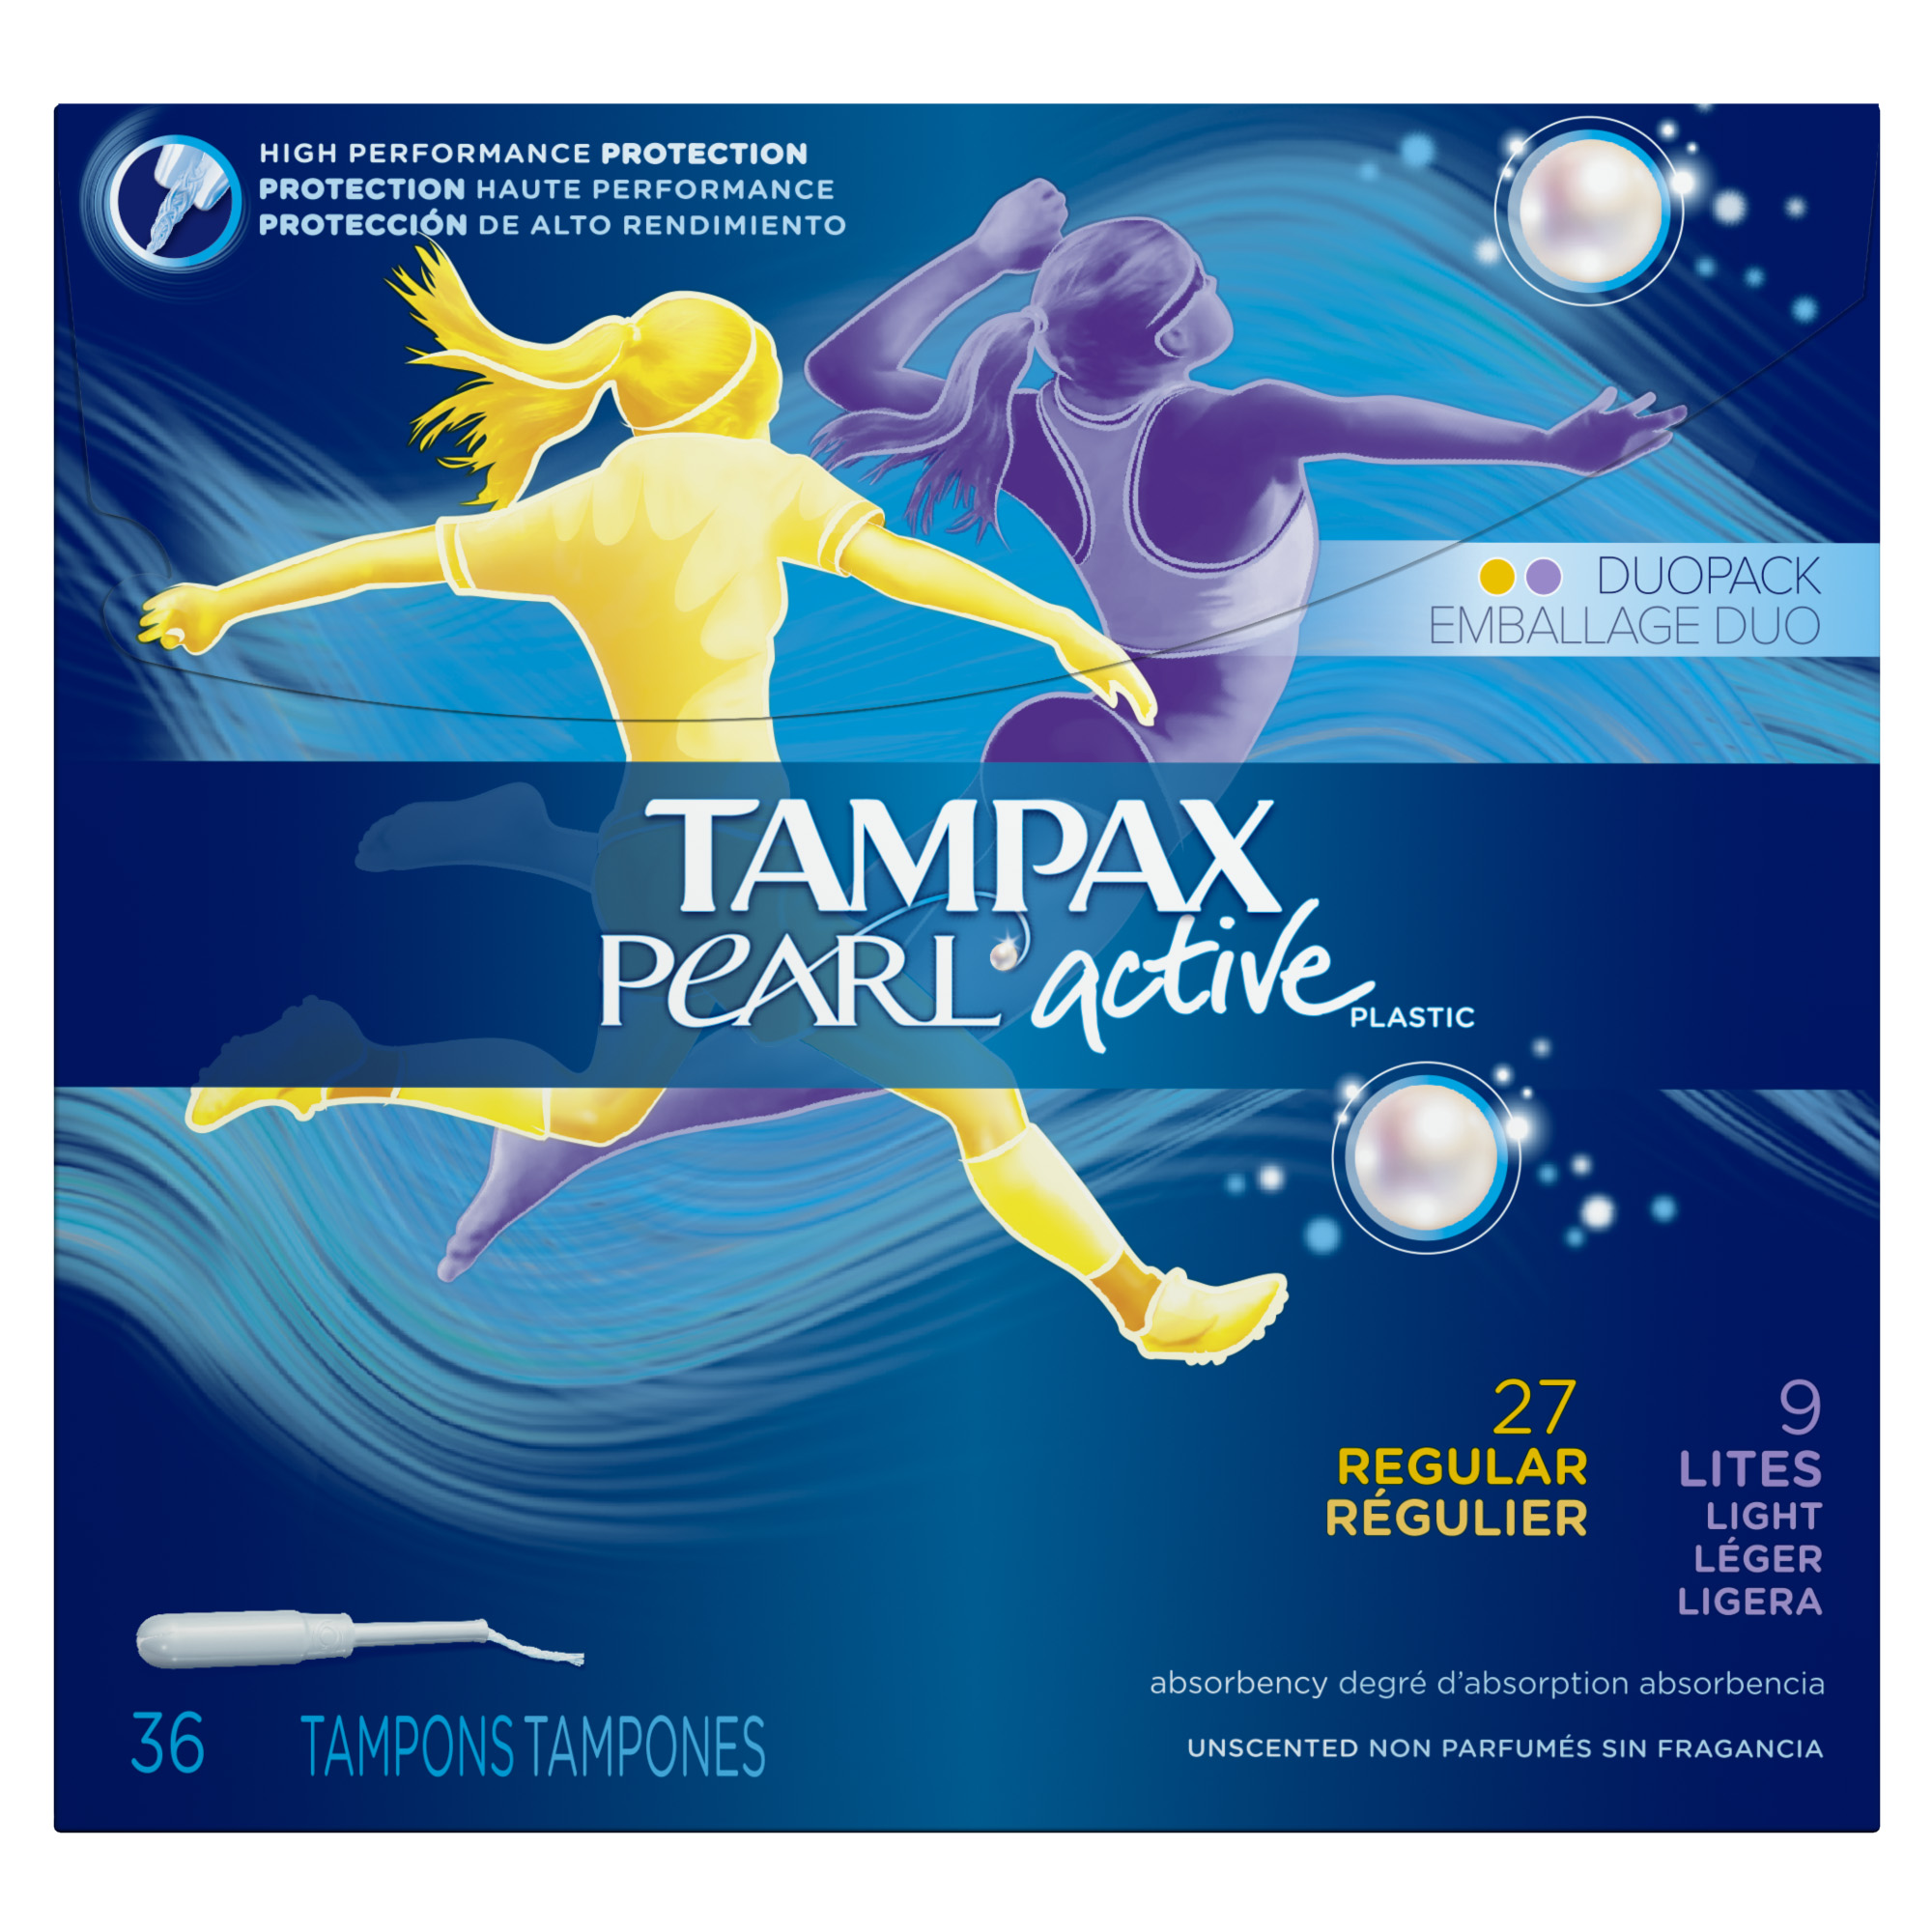 RSVP for the Tampax #ActiveSummer Twitter Party Tuesday 6/25 at 9pm ET!